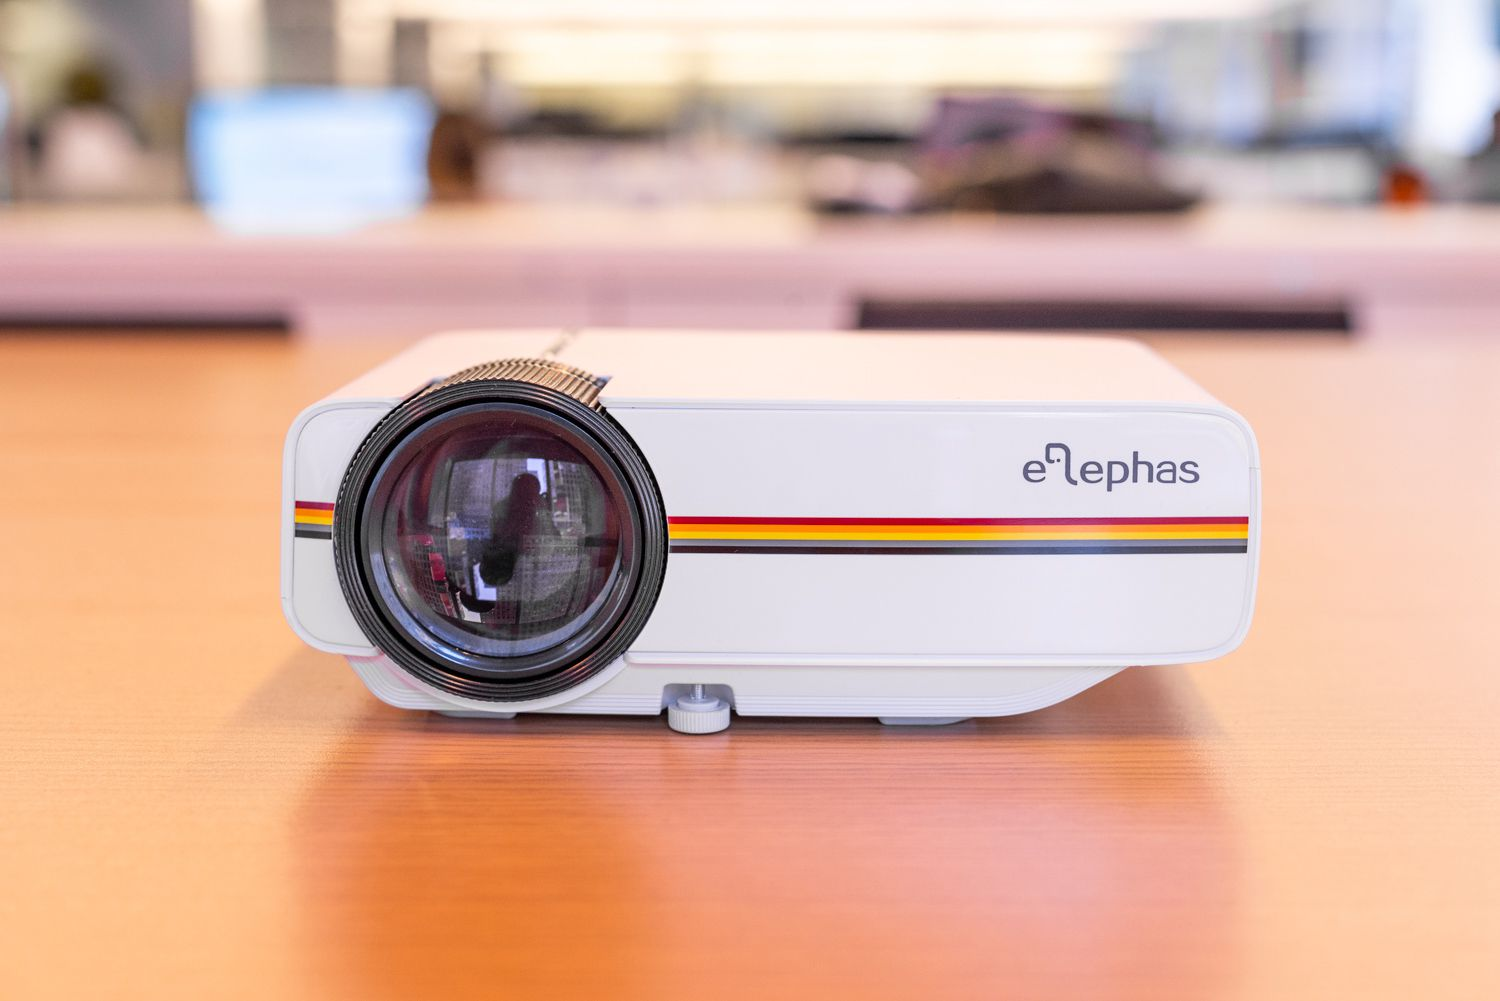 Best Portable Projector 2019 Elephas YG400 Mini Projector Review: Powerful Budget Projector